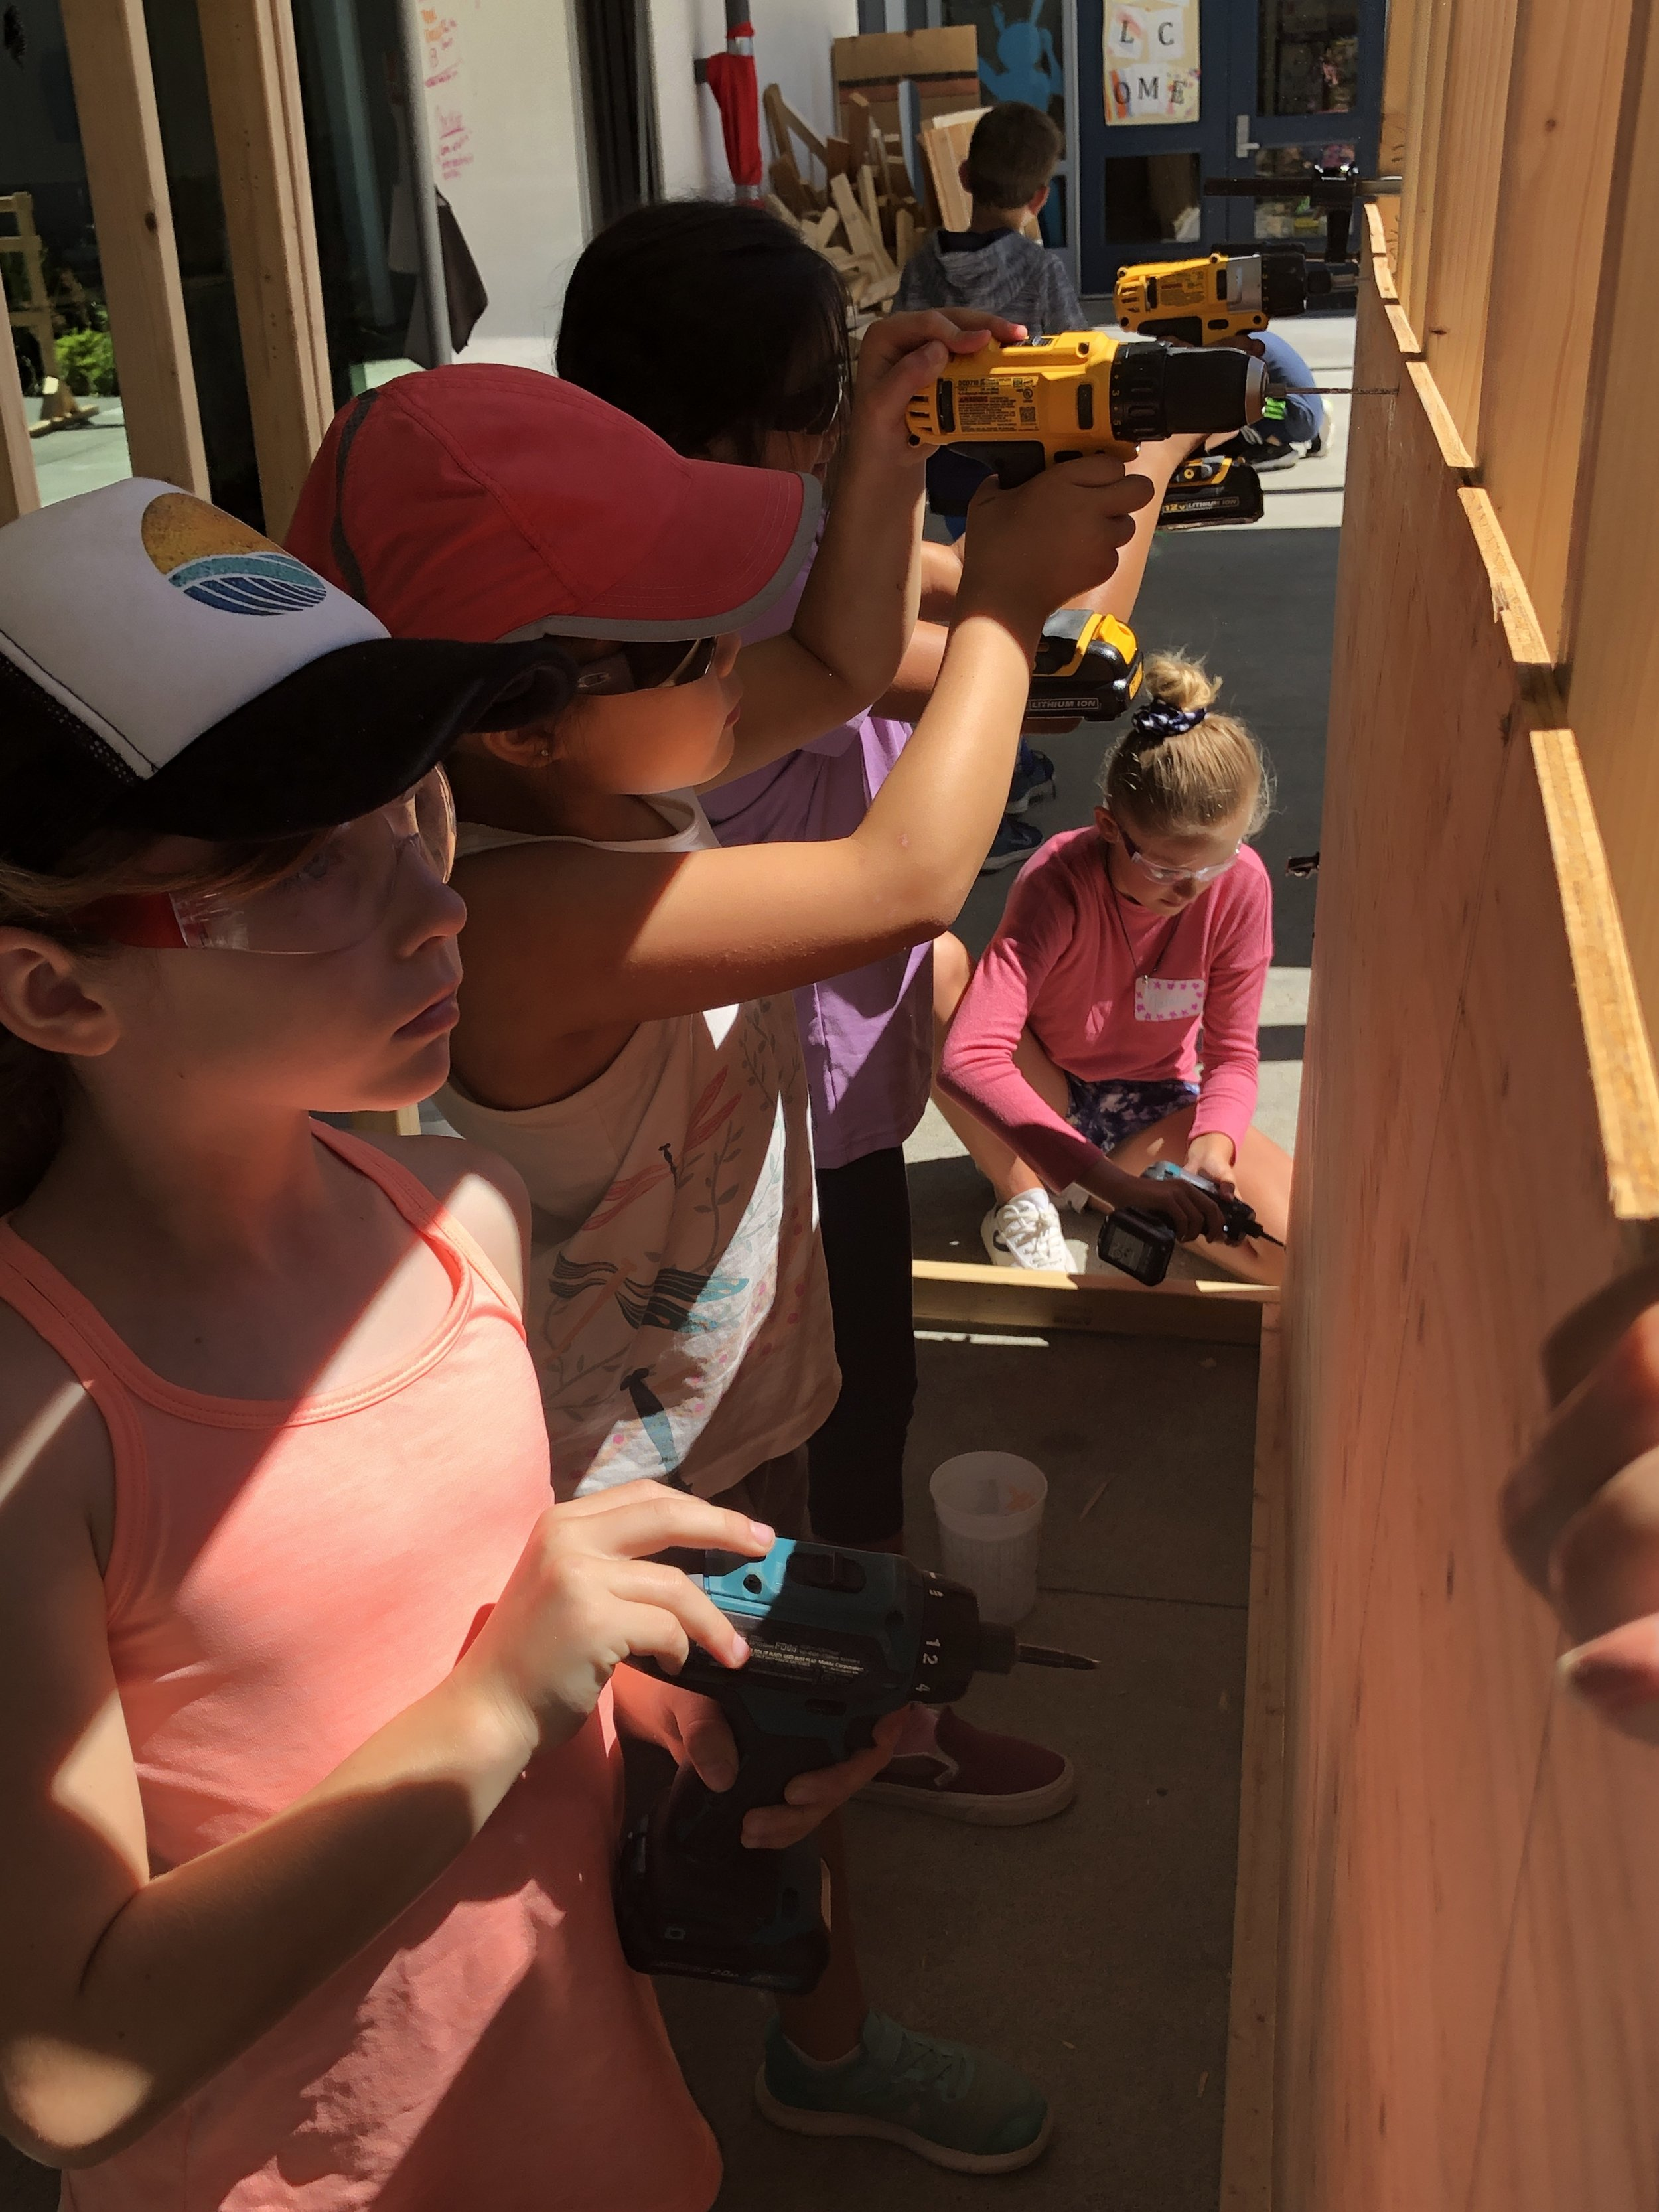 One, two, three, four drills in action to drive screws into the plywood sides of the cave.